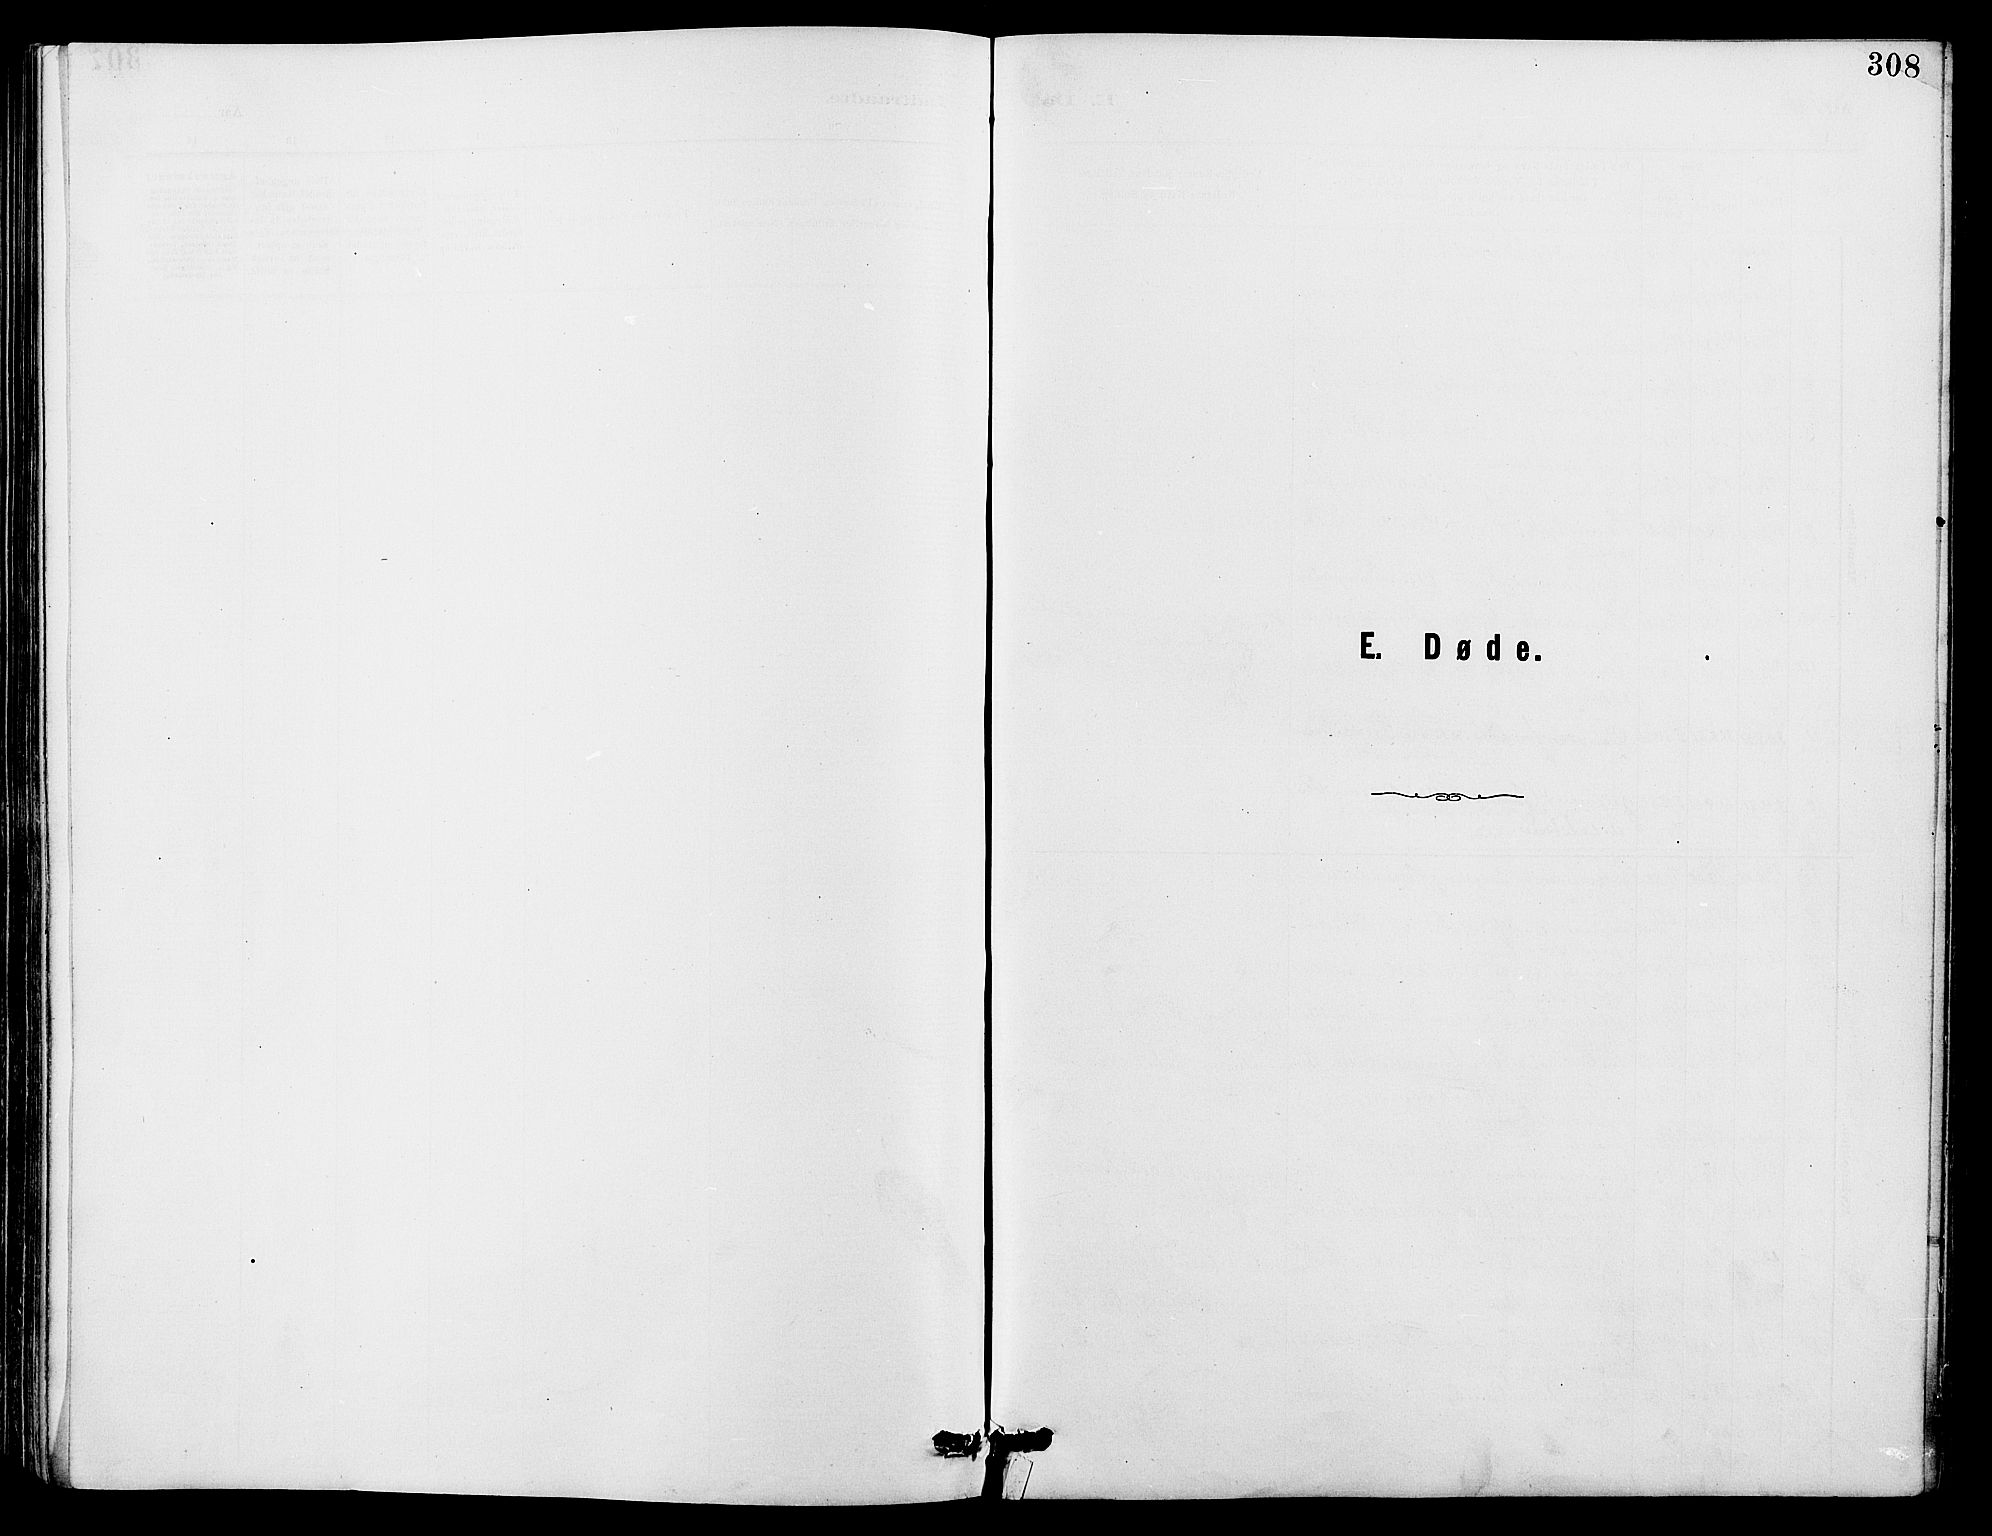 SAH, Dovre prestekontor, Parish register (copy) no. 2, 1881-1907, p. 308